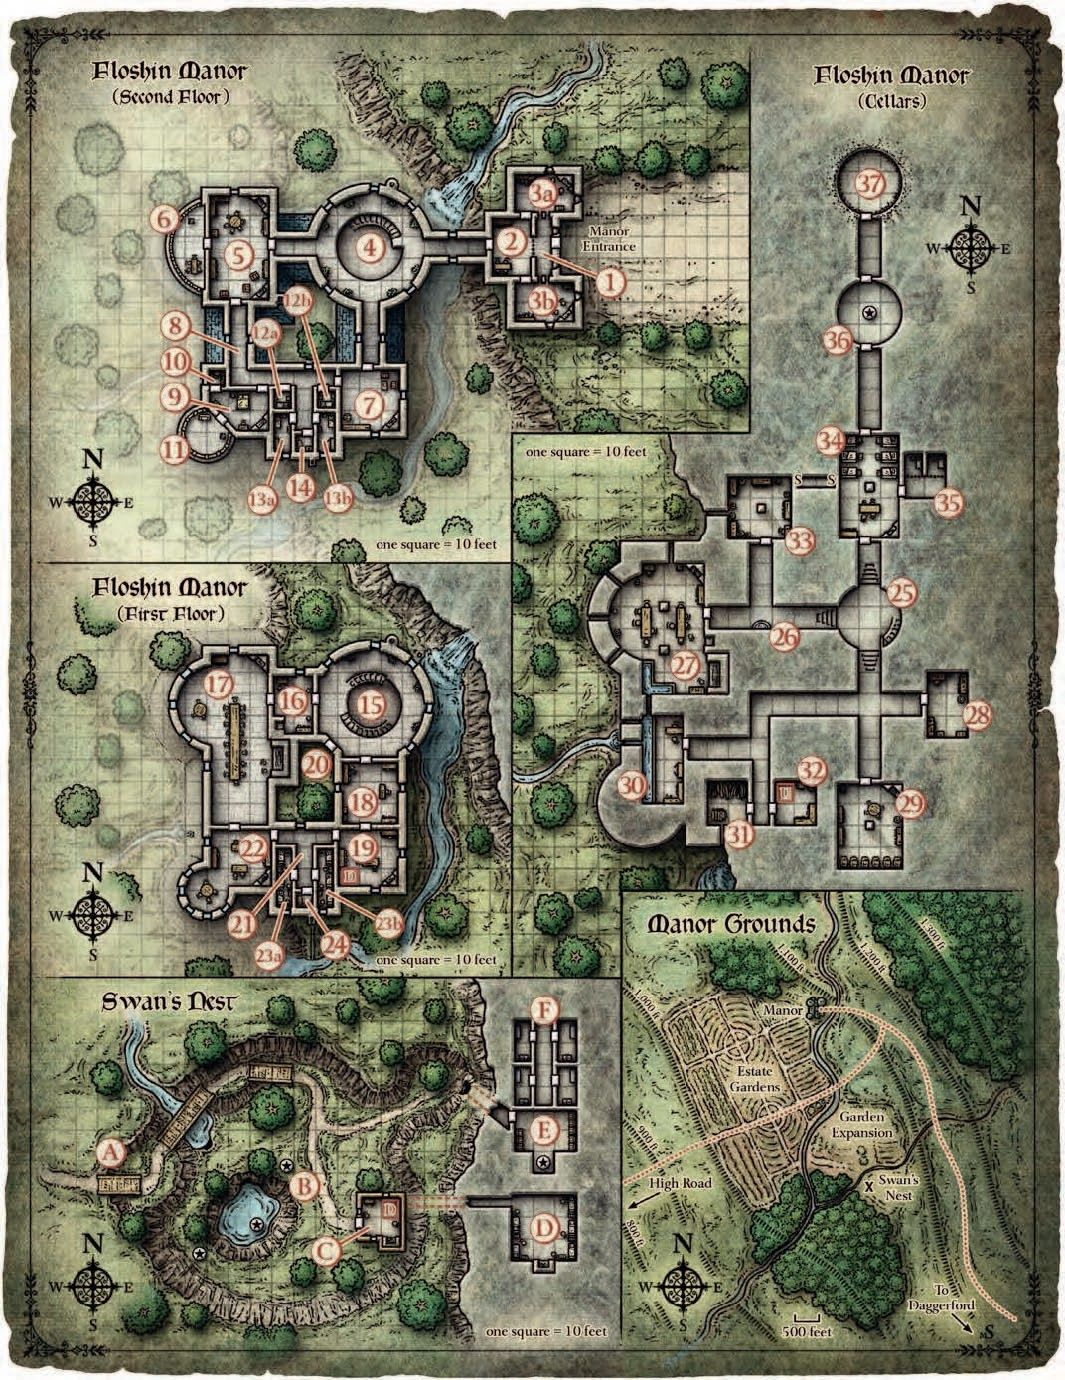 pin by stephen burris on dd  pinterest  rpg fantasy map and  - a series of battle maps created for a variety of fantasy tabletop rpgs